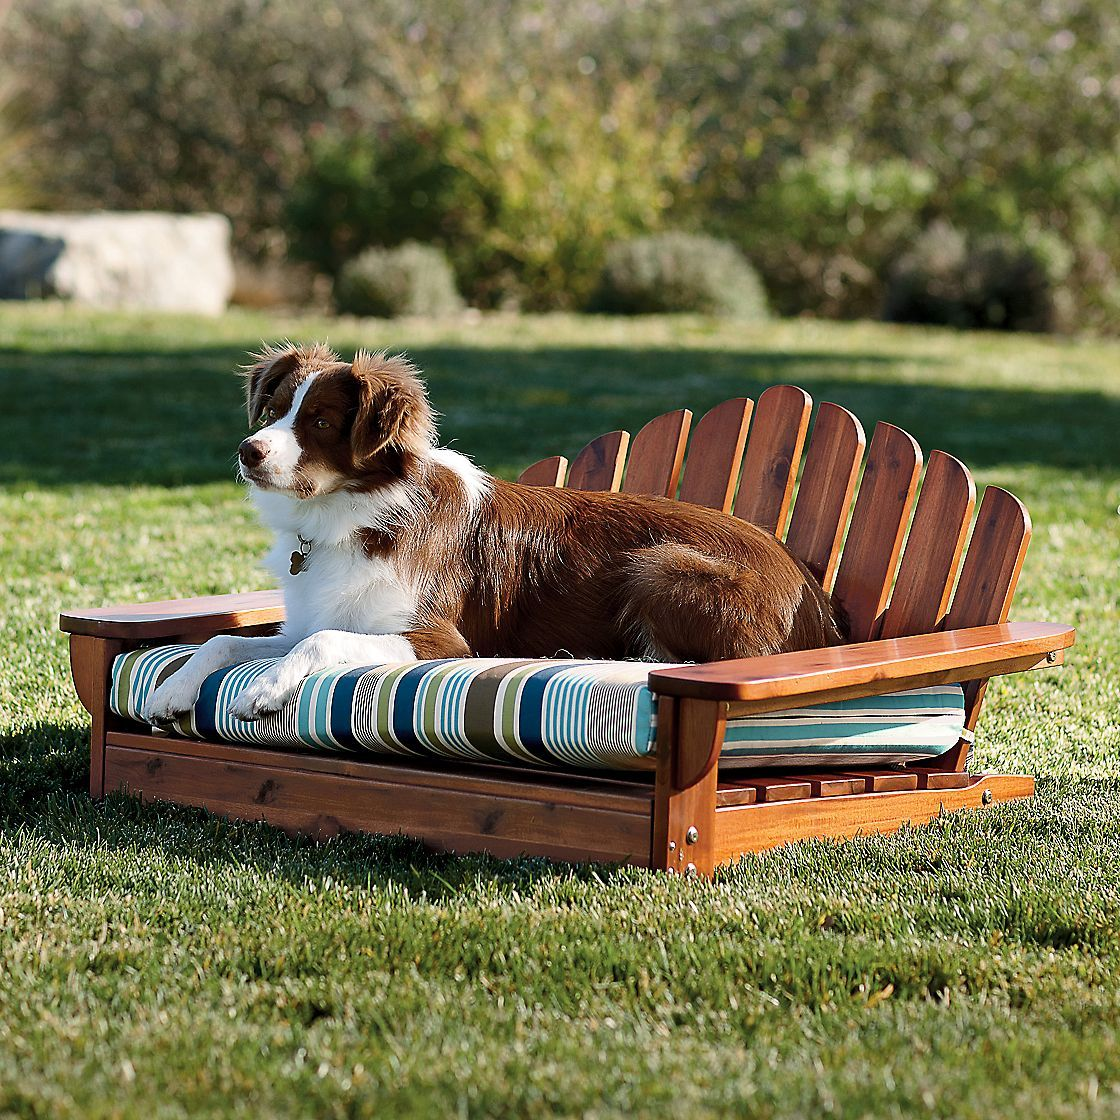 Adirondack collection pet bed! Maybe just maybe this will